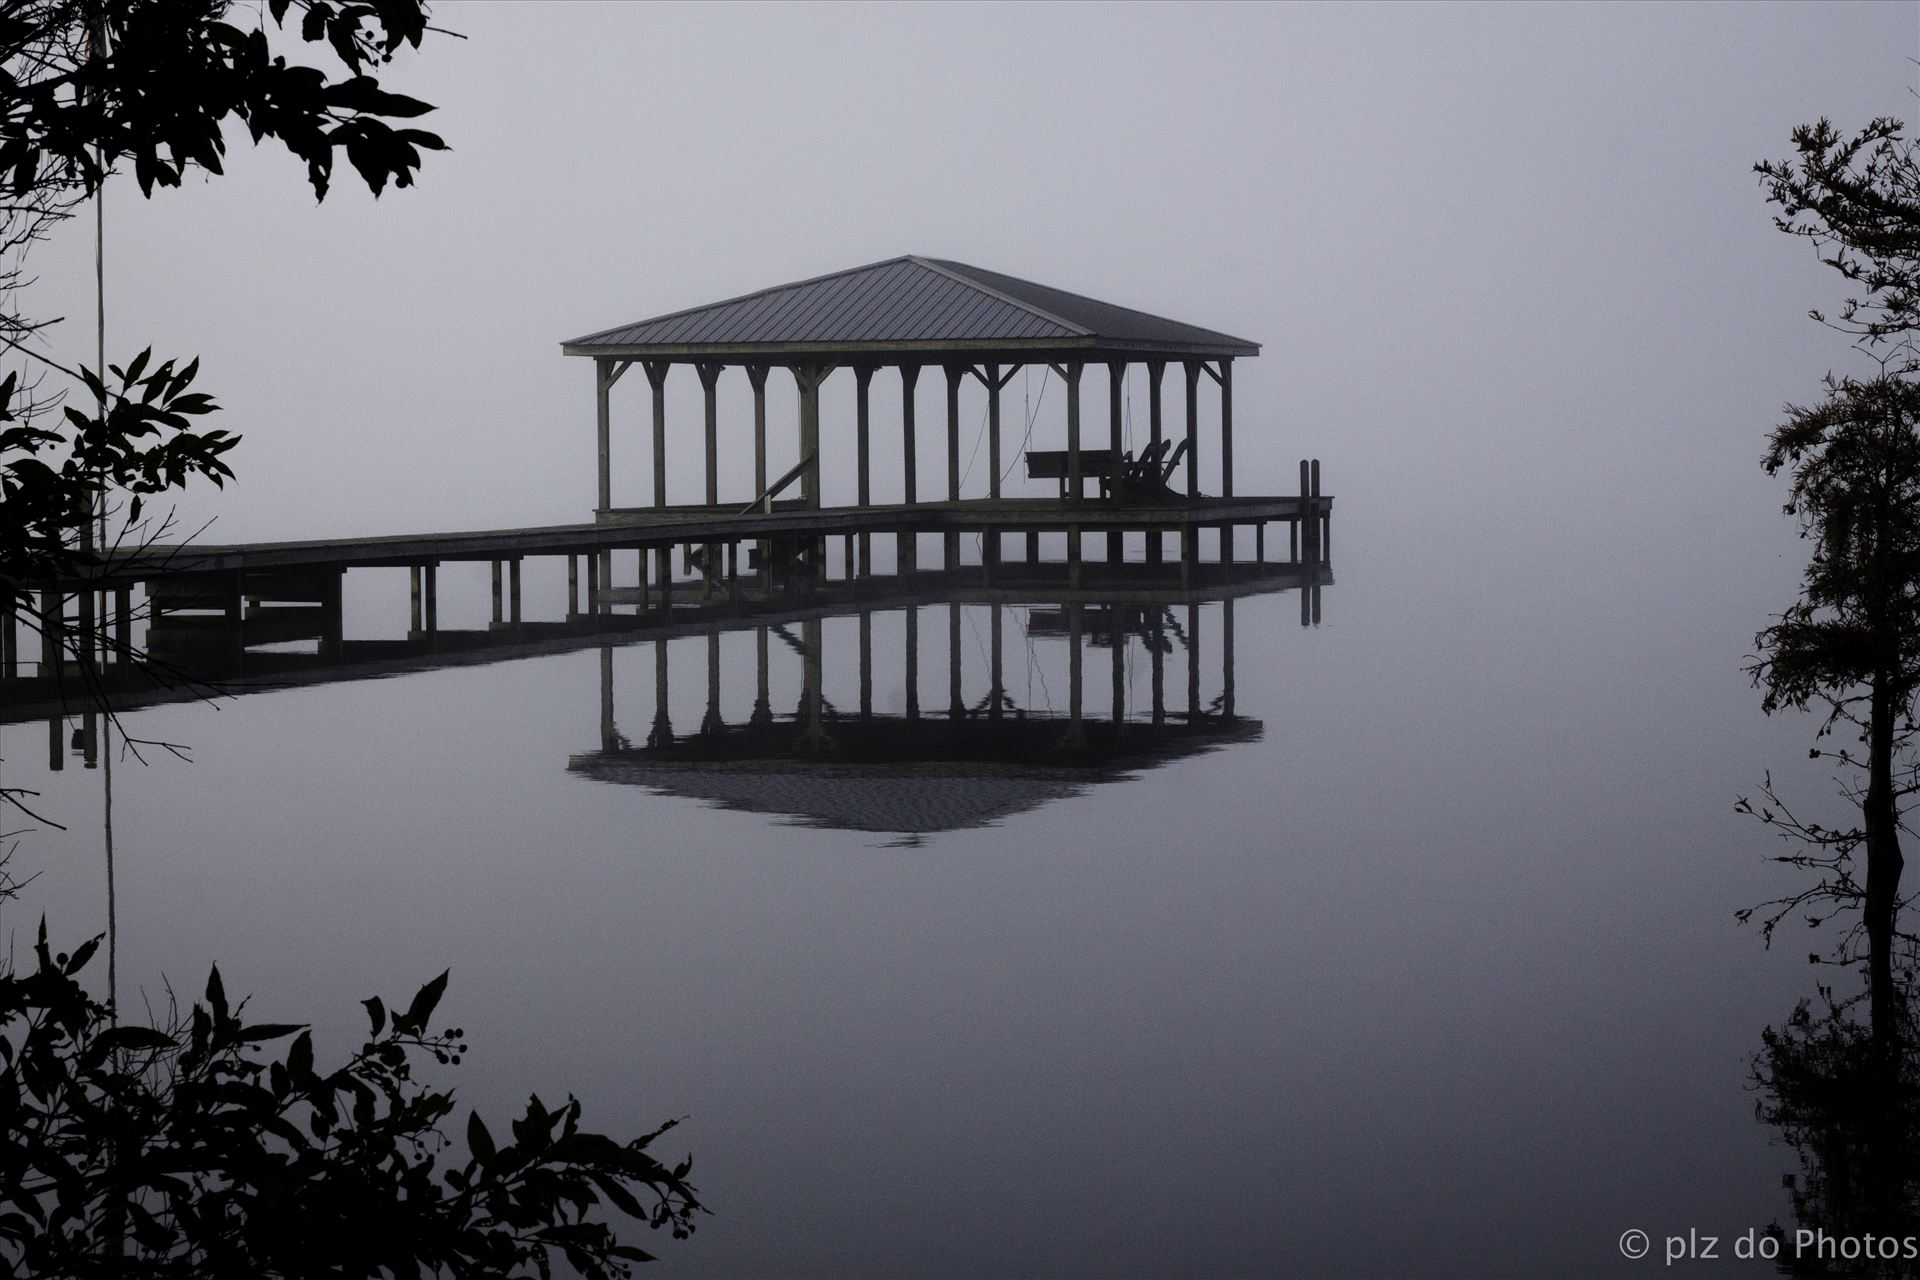 One Foggy Morning.jpg - This image was taken at Lake Waccamaw, NC from my mother's yard one fall morning.  I hoped to capture the peacefulness and beauty that I saw this morning. by Patricia Zyzyk